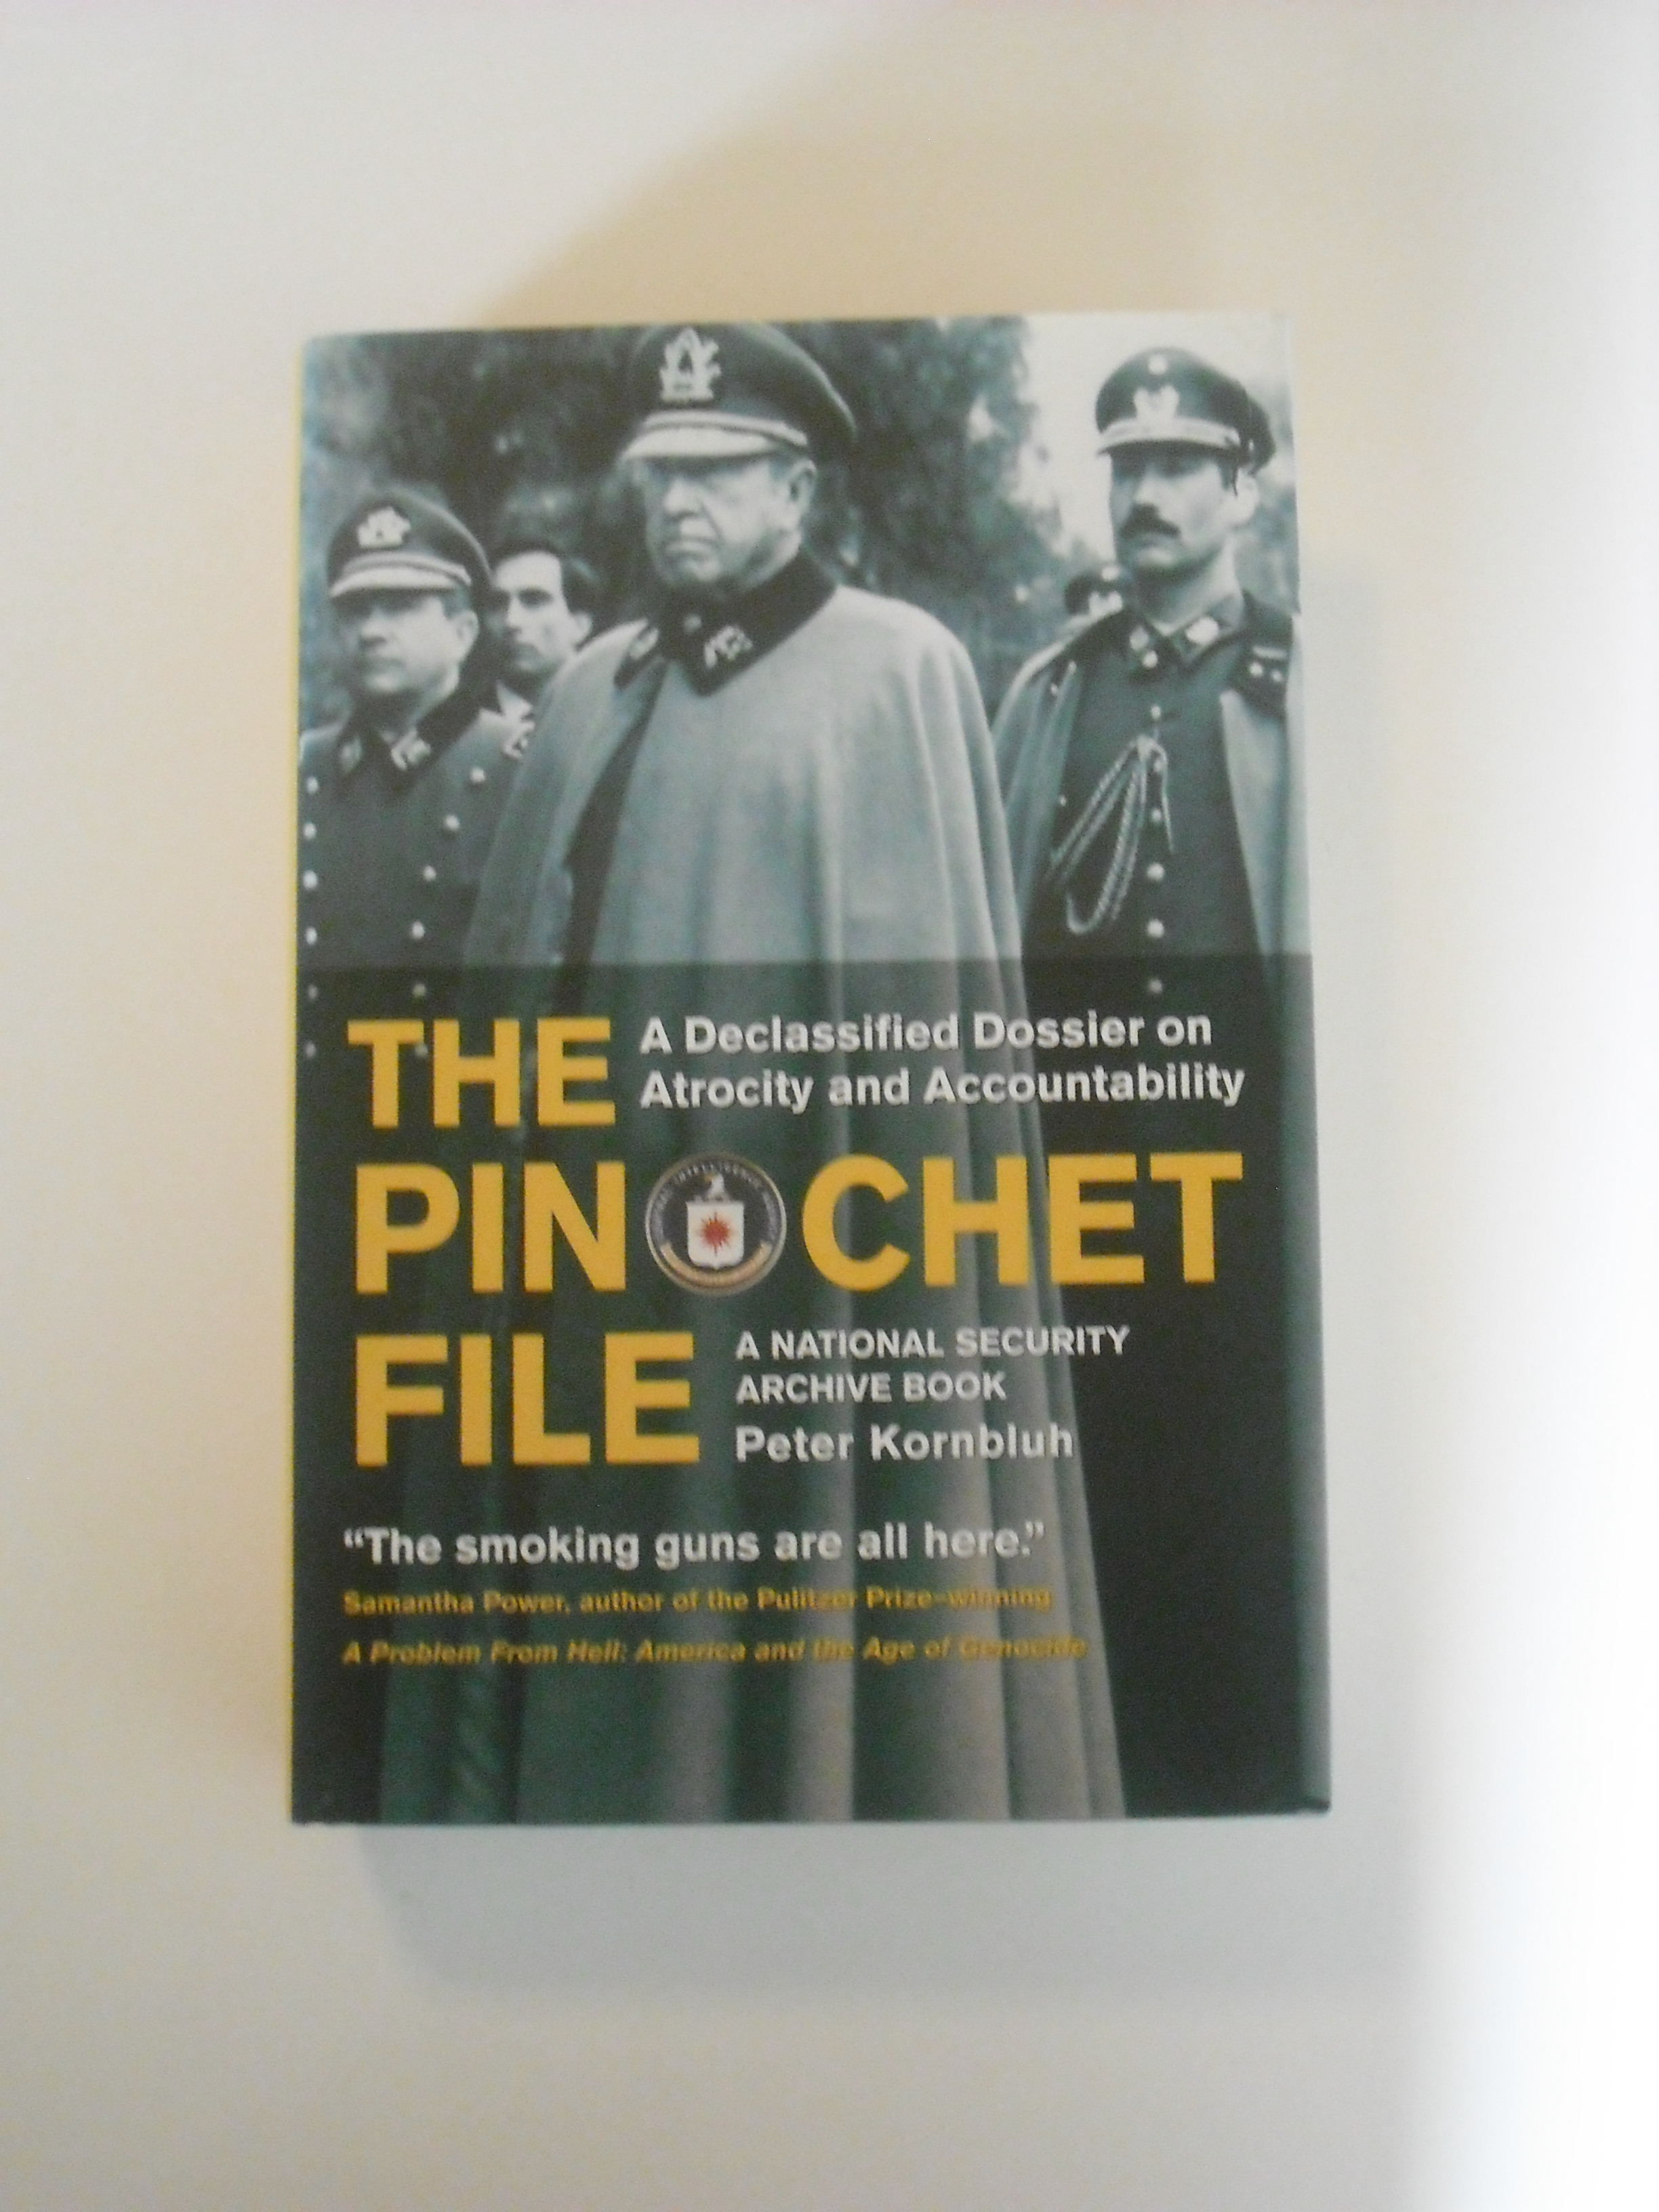 THE PINOCHET FILE EPUB